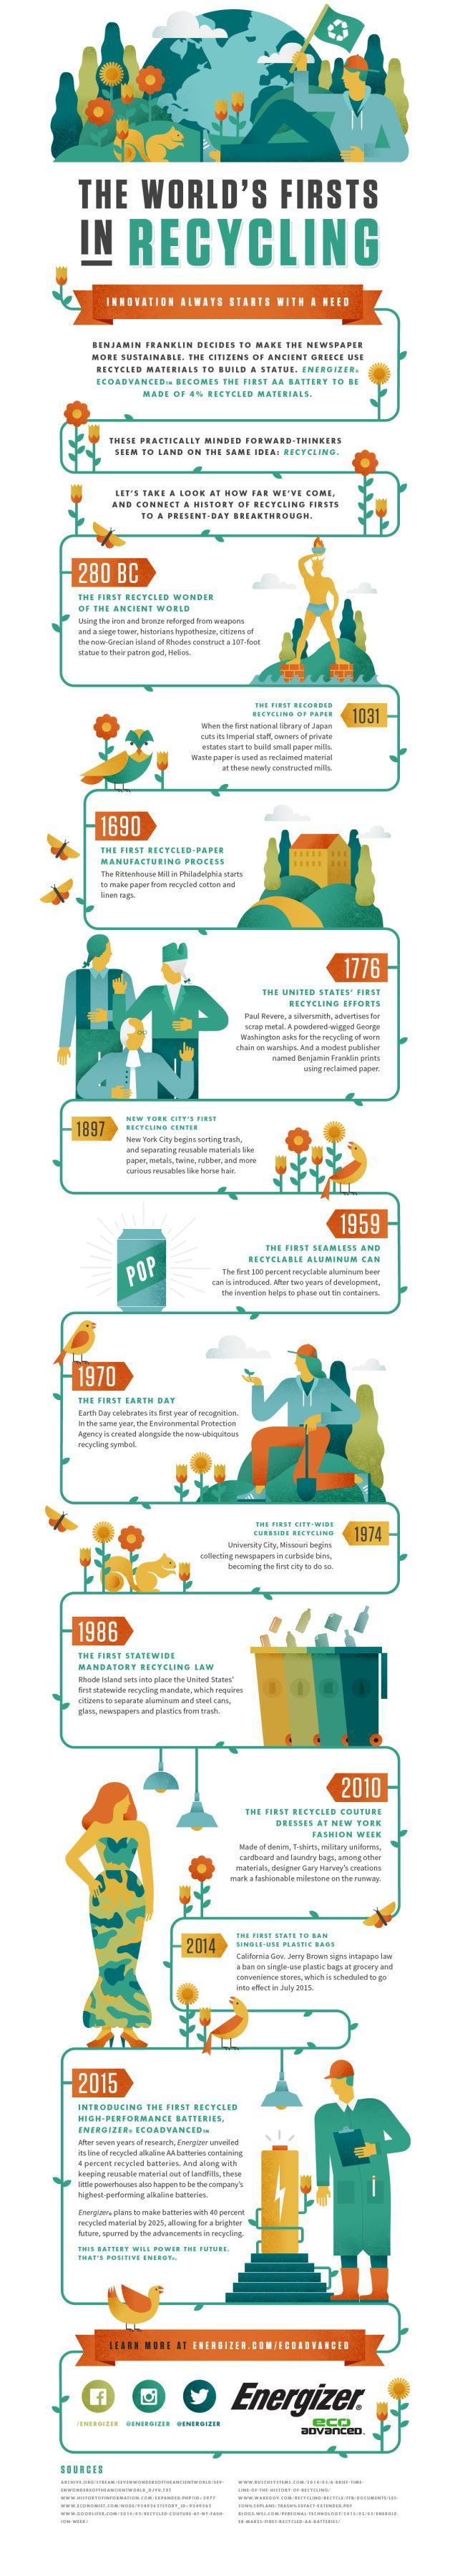 The World's Firsts in Recycling Infographic Timeline   Lemonly